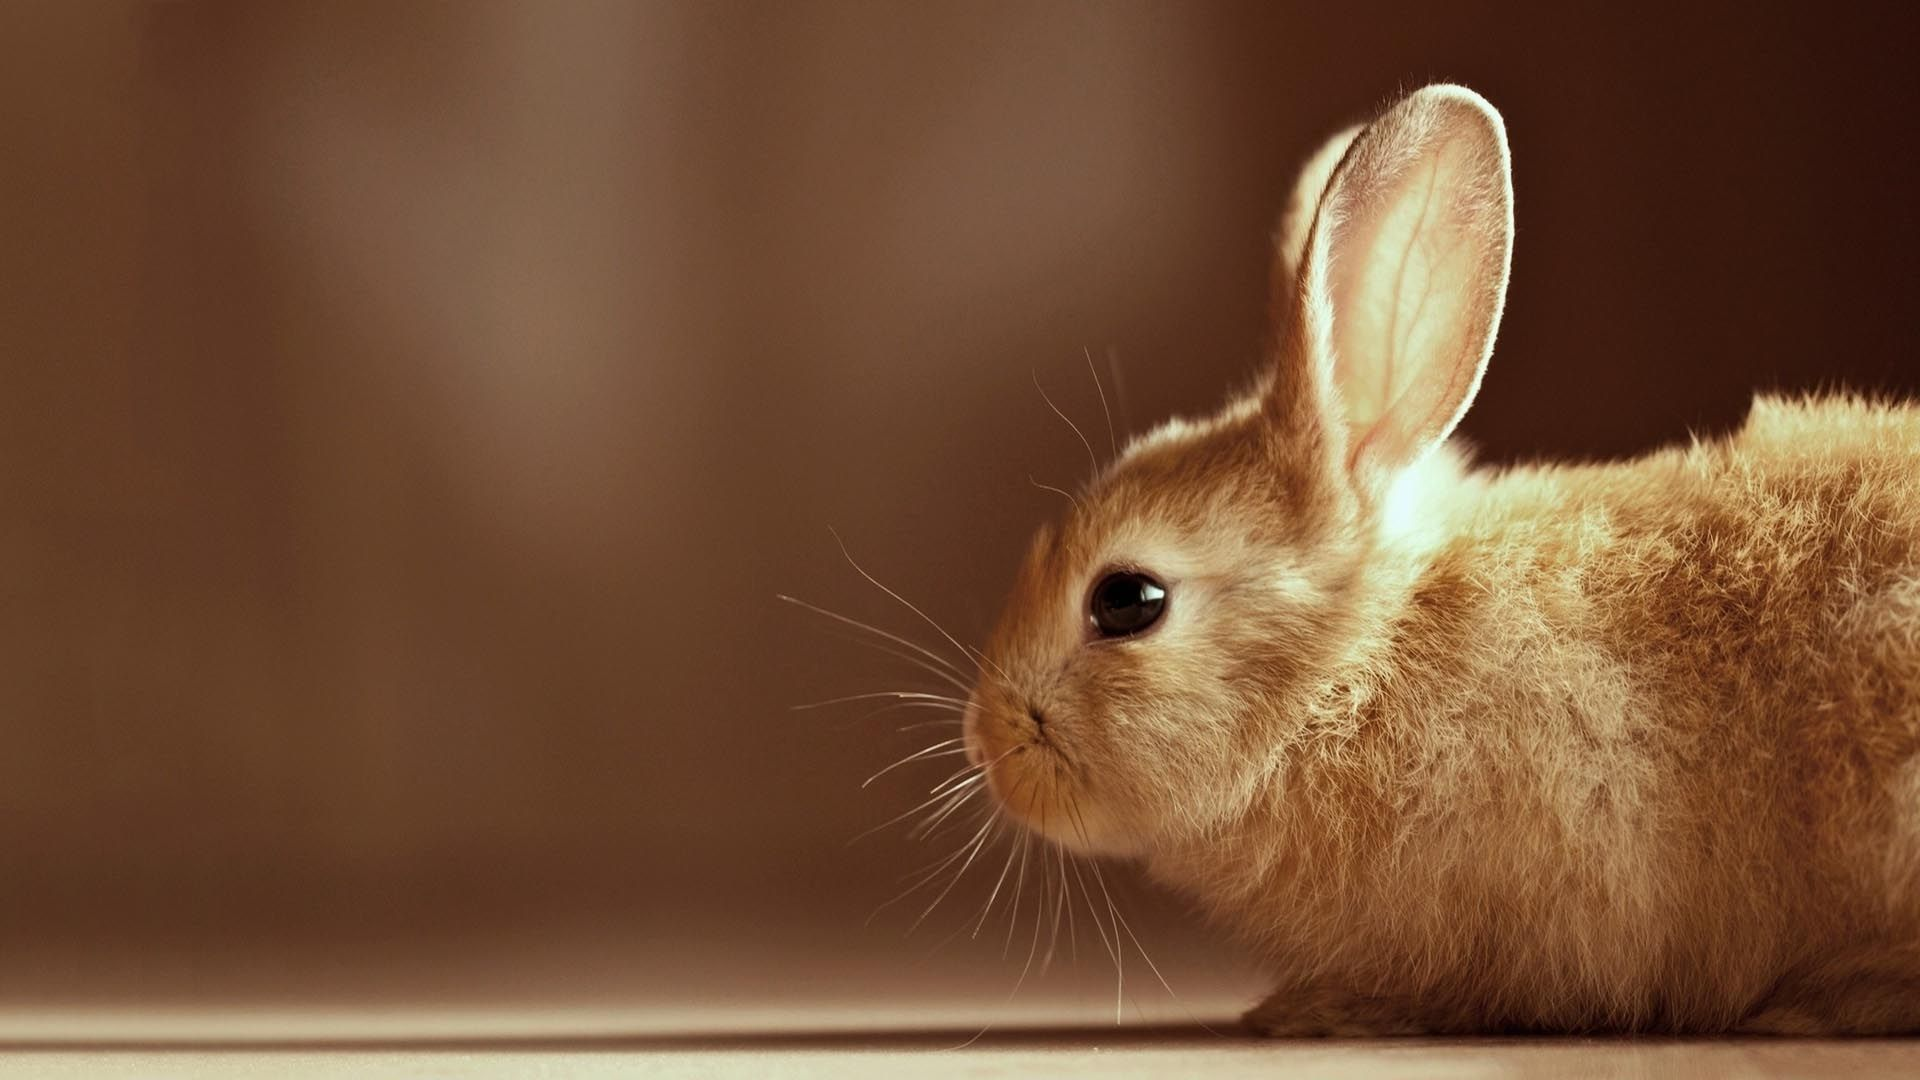 Happy Easter Cute Bunny Pictures Rabbit Wallpaper Cute Bunny